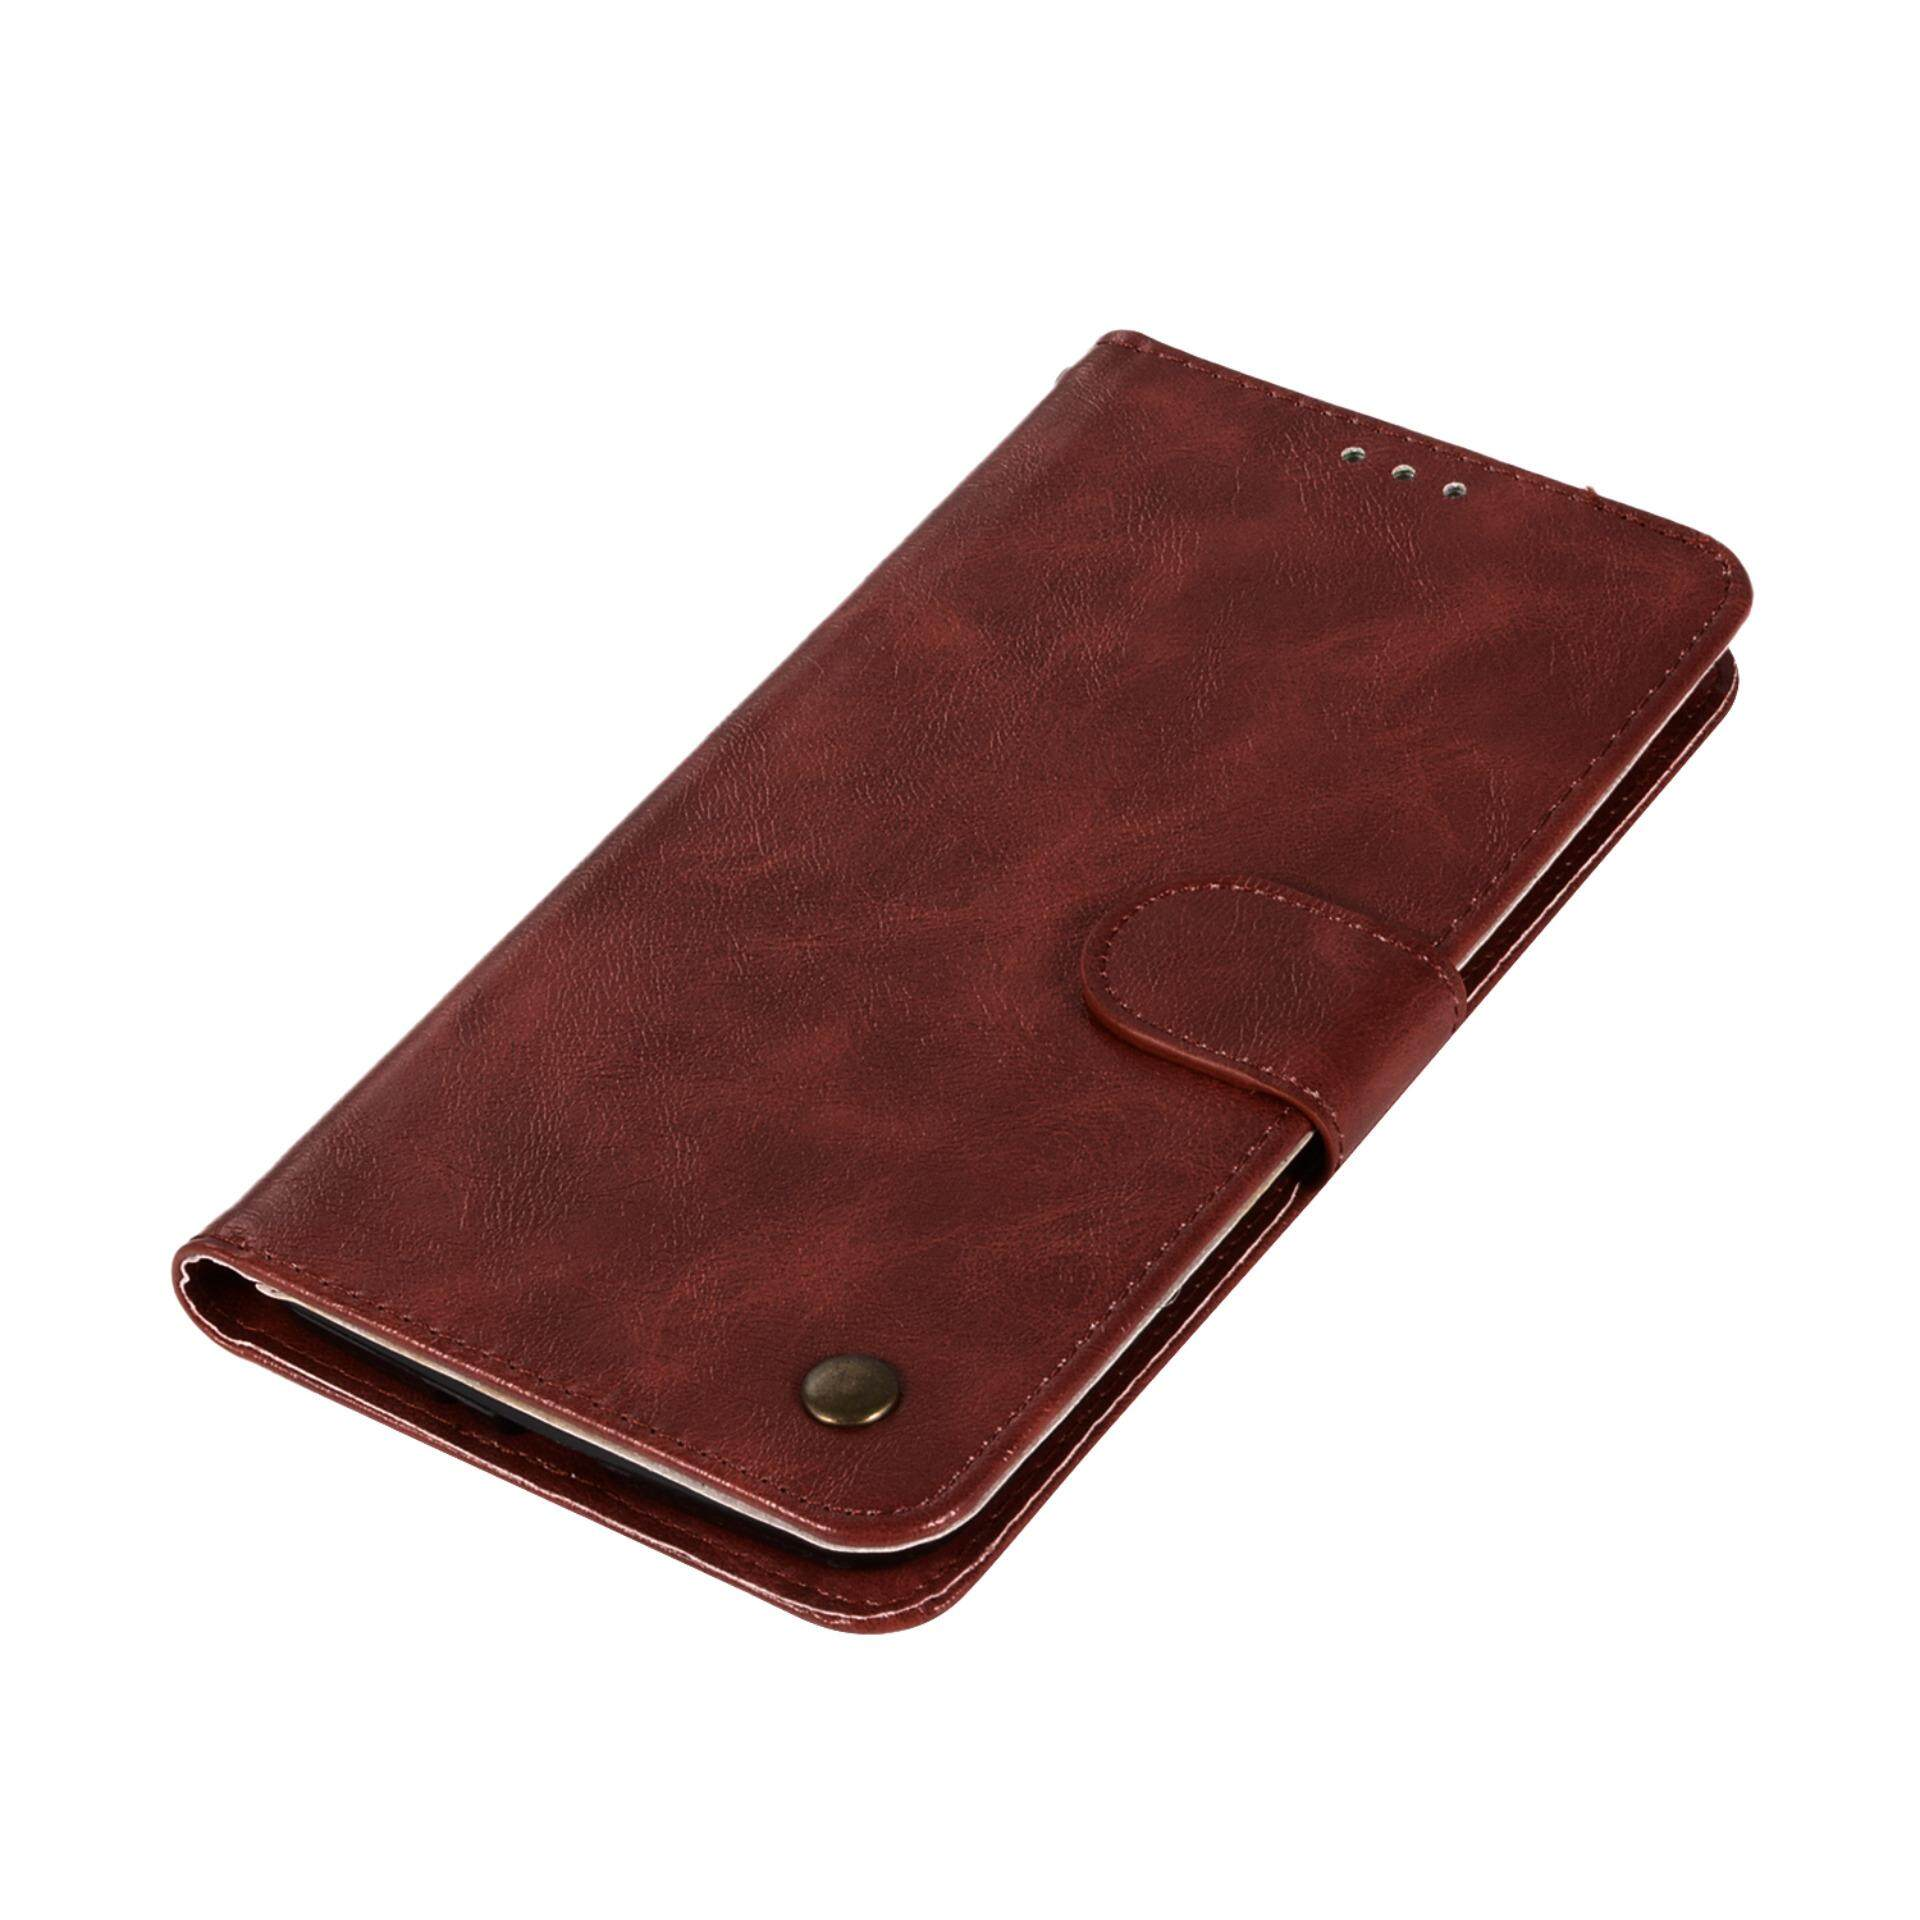 Kunpon Classic Series Ultra Thin Slim Fit Premium Pu Leather Flip Case Ze601kl Folio Wallet With Id Credit Card Slot Cash Clip Stand Holder Soft Tpu Shockproof